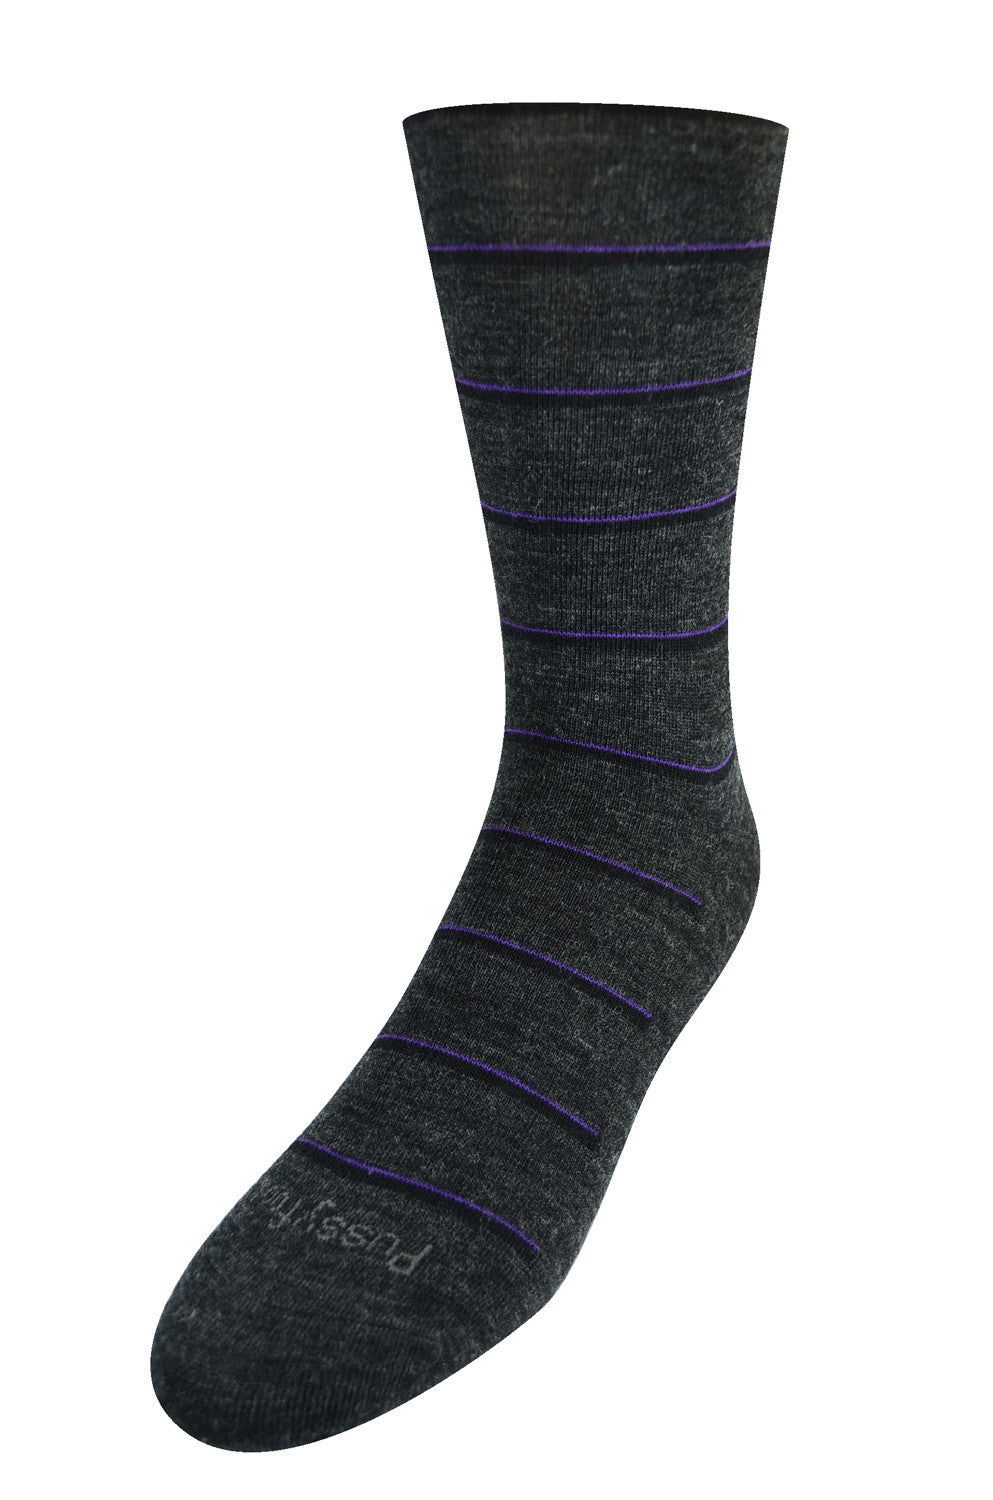 Pussyfoot Wool Non-Elastic Health Socks - Charcoal Stripe